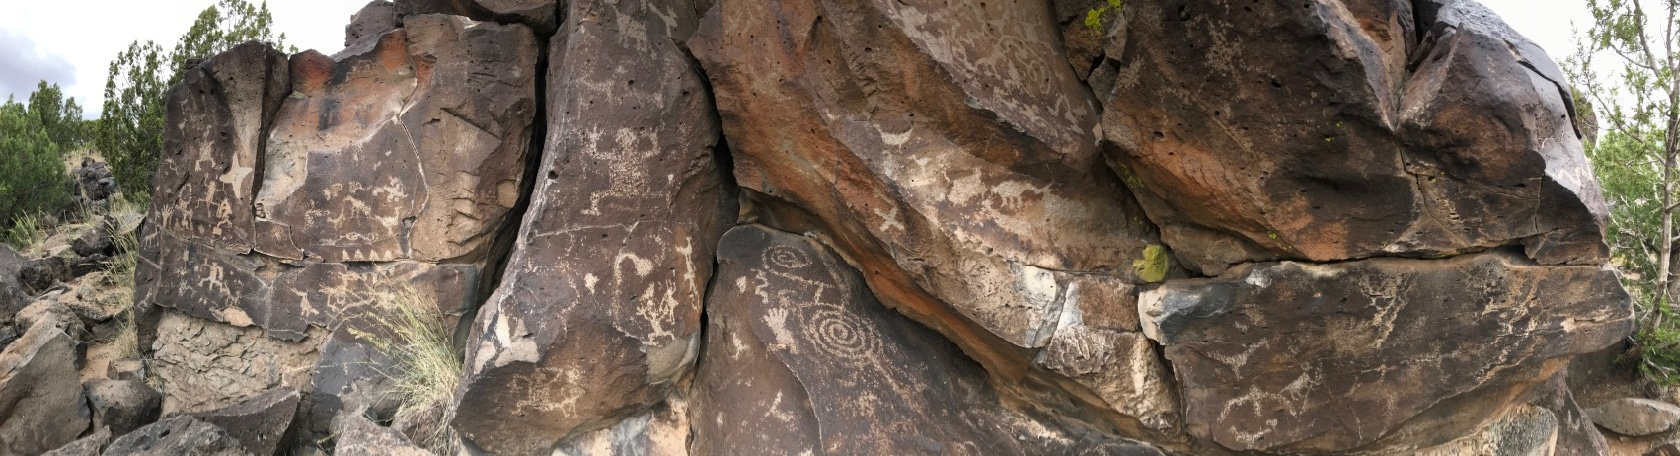 Panorama of tan petroglyphs carved into a brown rock